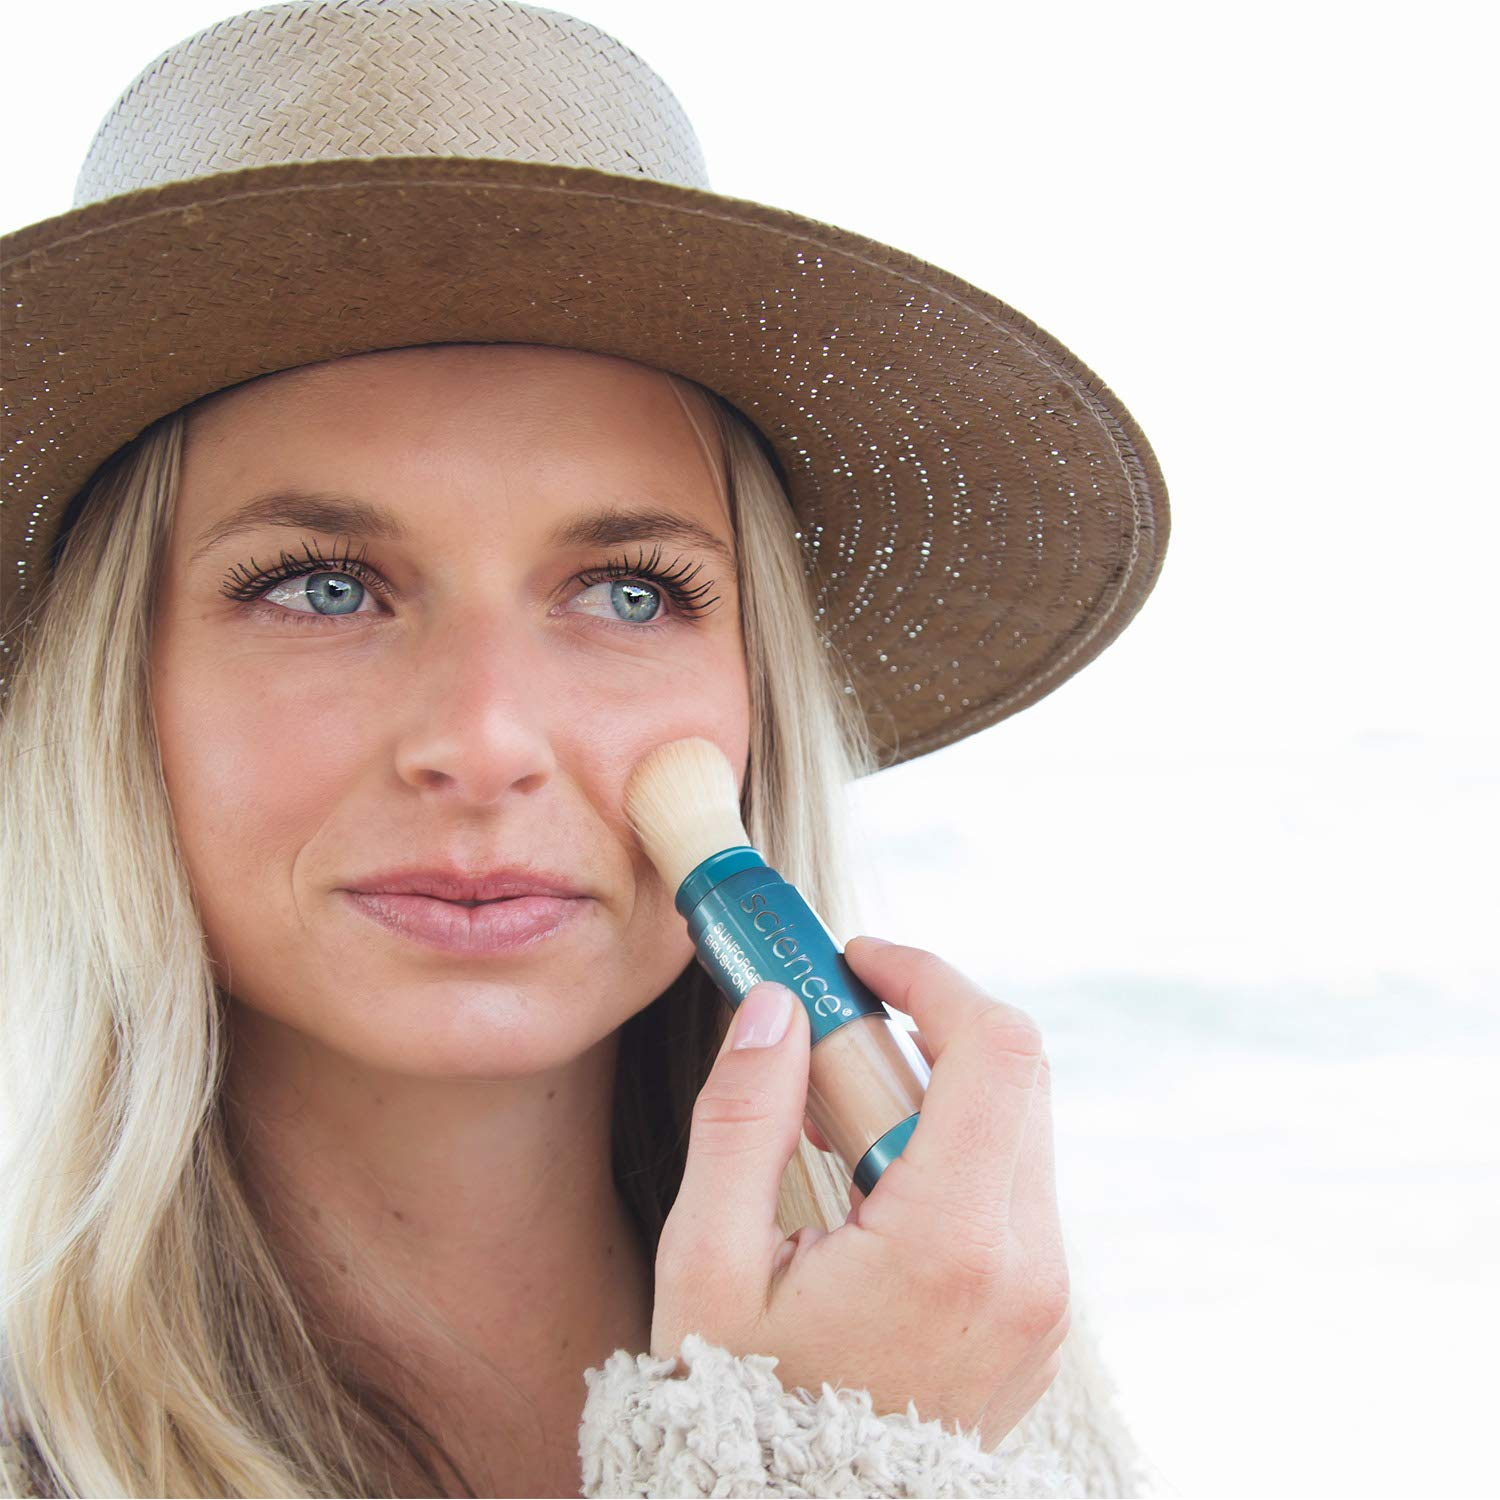 Colorescience Brush-On Sunscreen, Sunforgettable Mineral Powder for Sensitive Skin, Broad Spectrum SPF 50 UVA/UVB Protection